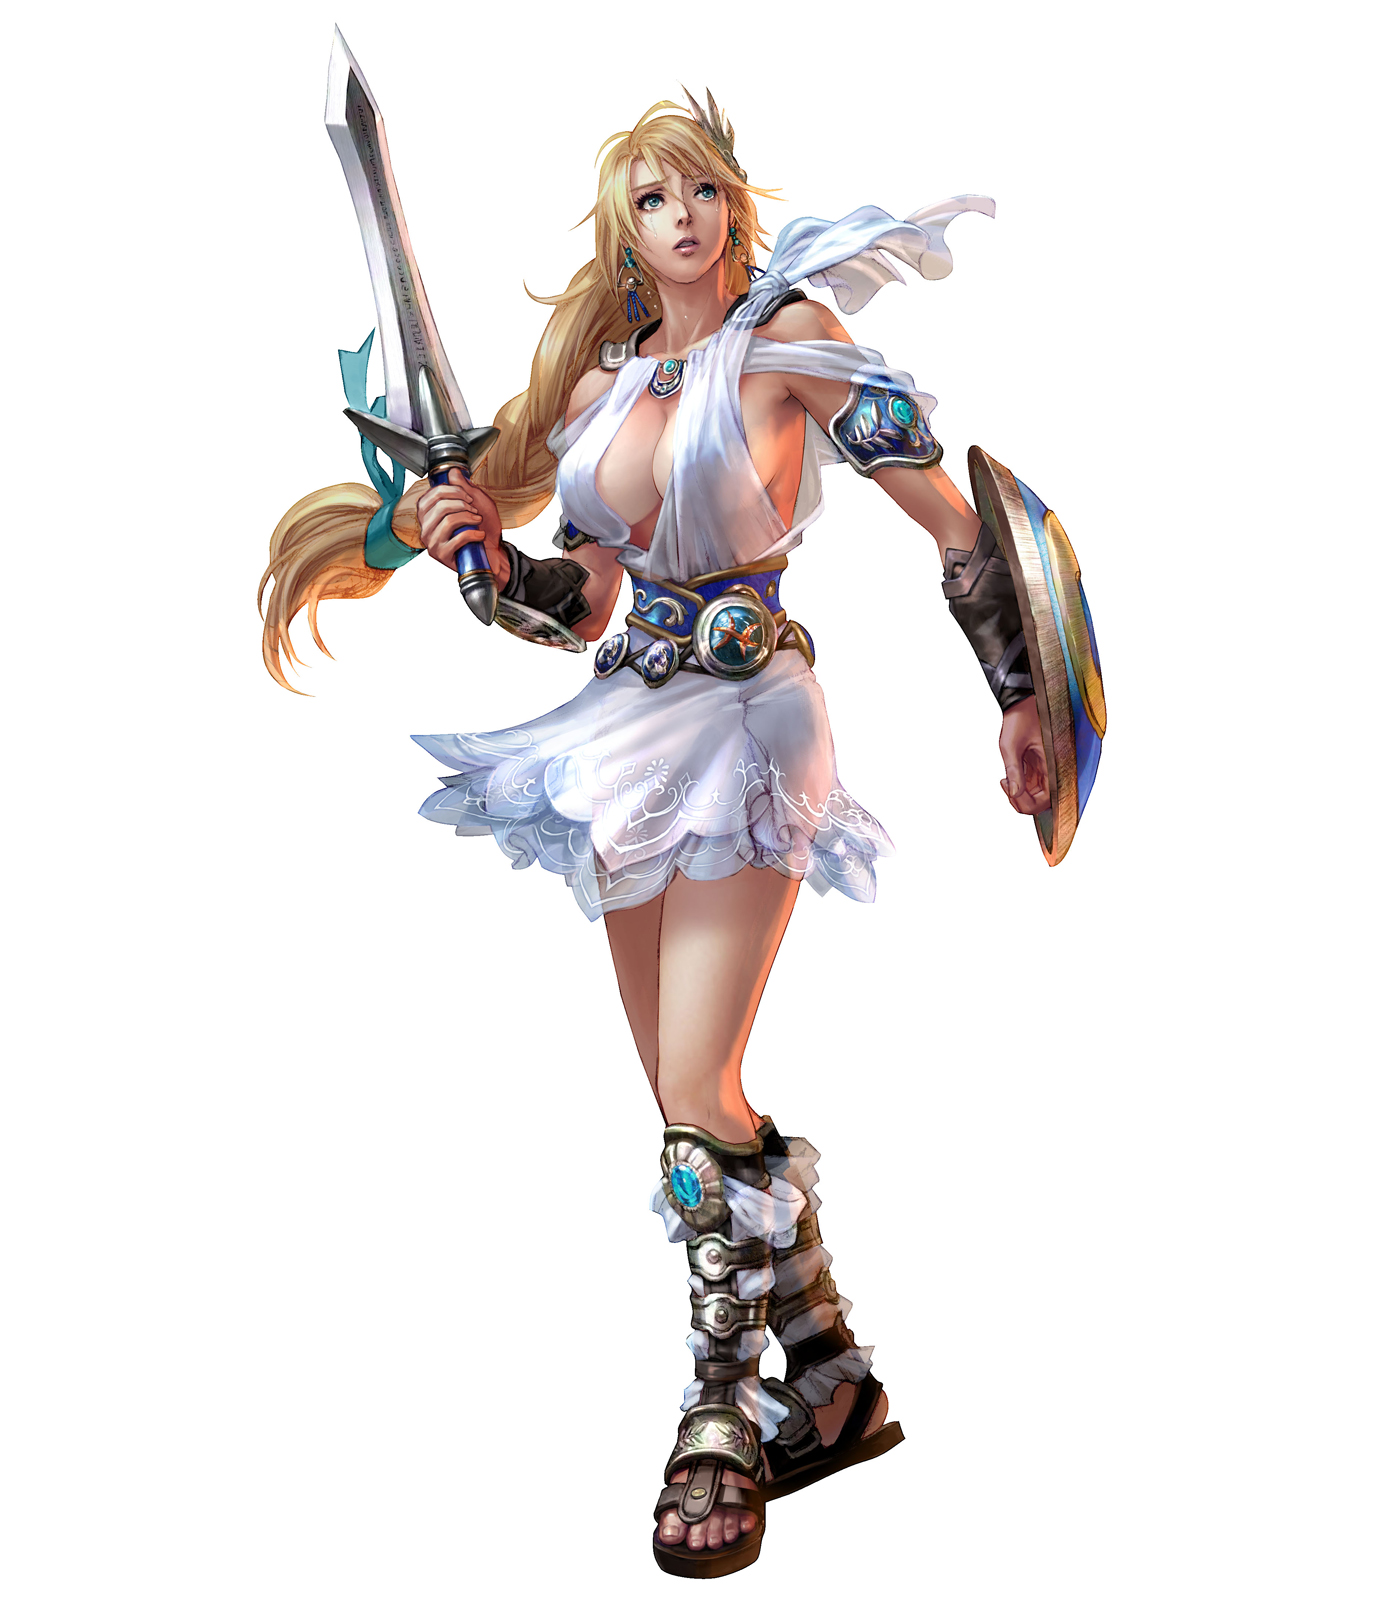 Warriors Orochi 3 Ultimate Girls: (Japan) Warriors Orochi 3 Ultimate Gets A Surprise Guest